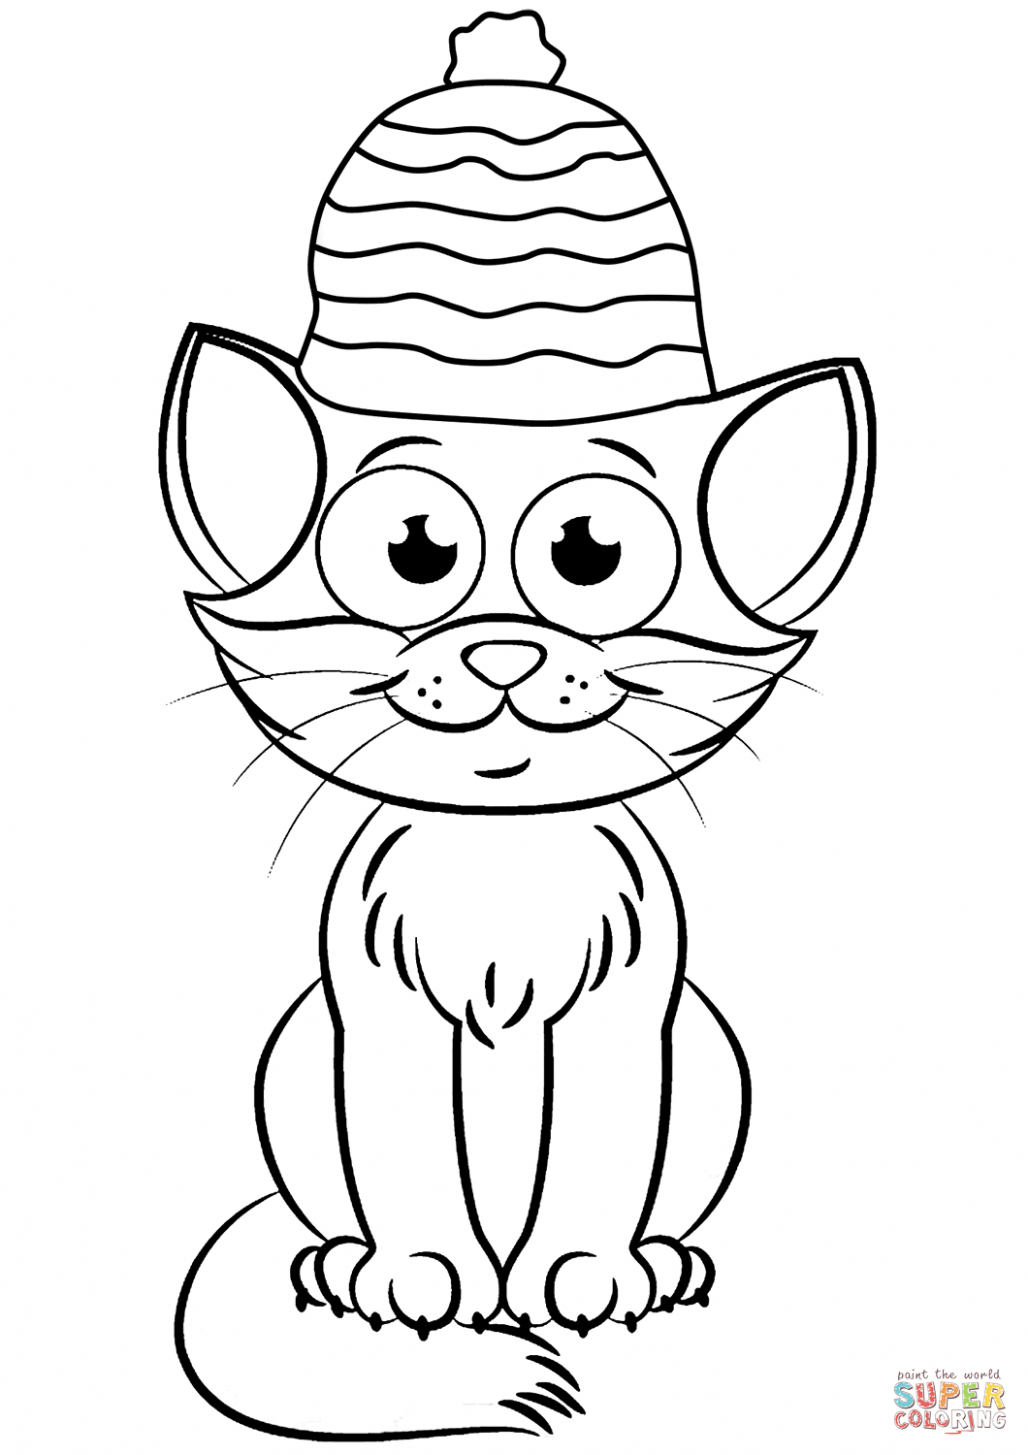 Christmas Cat coloring page | Free Printable Coloring Pages